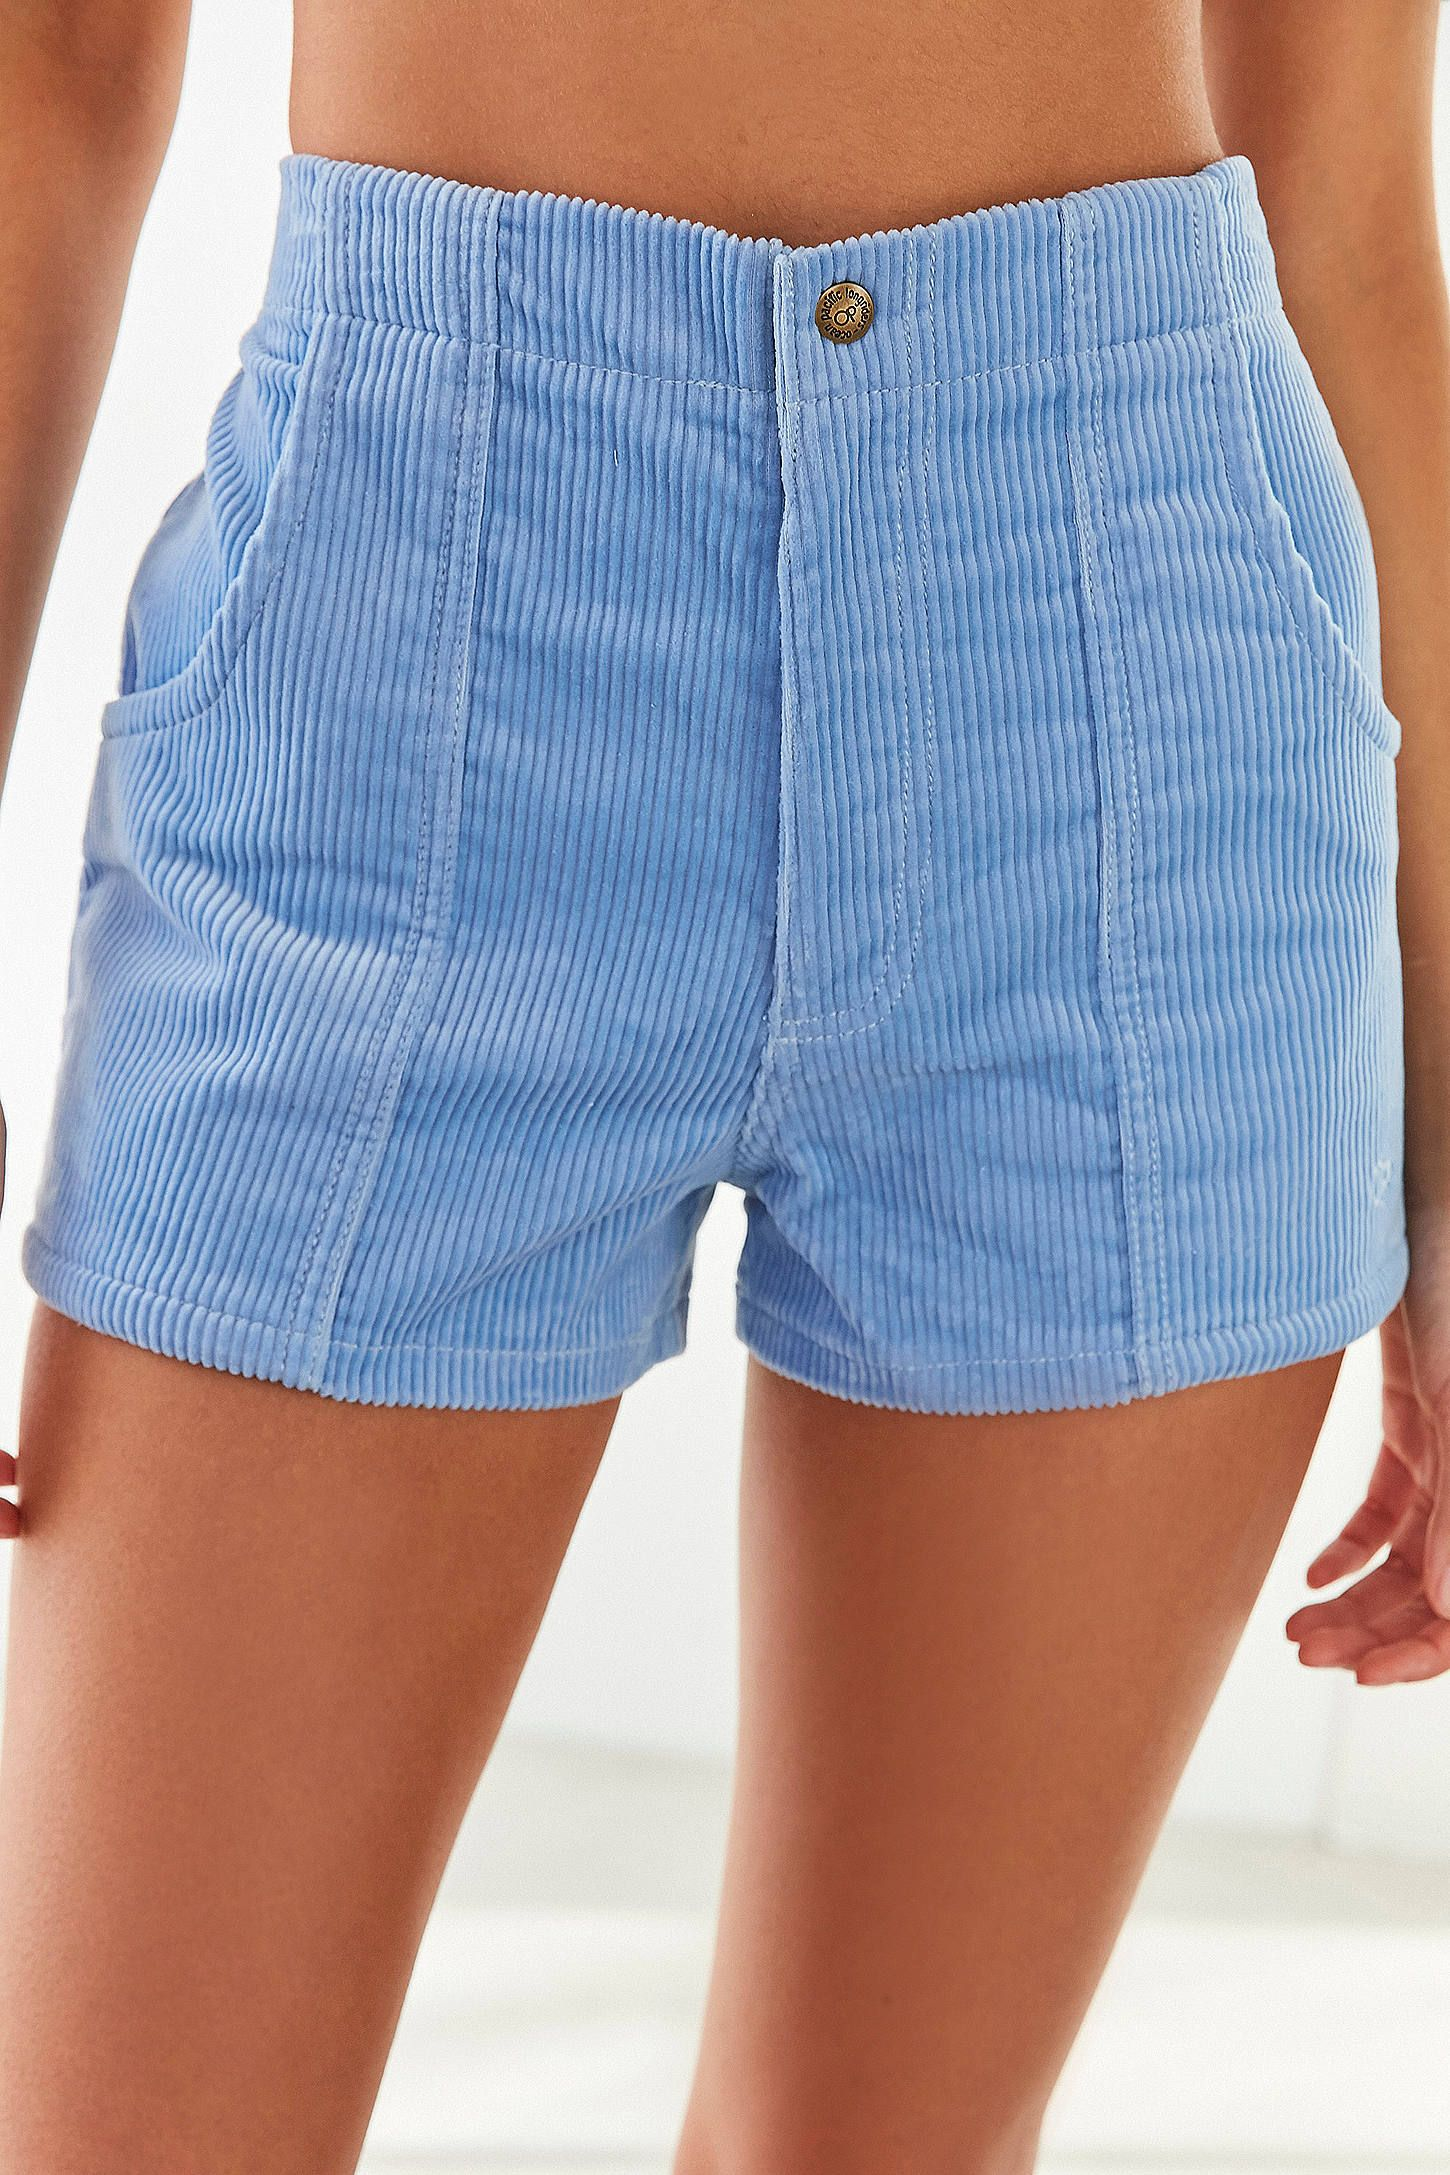 709685f285 Slide View: 2: Op For UO High-Rise Corduroy Short | Fash | Corduroy ...